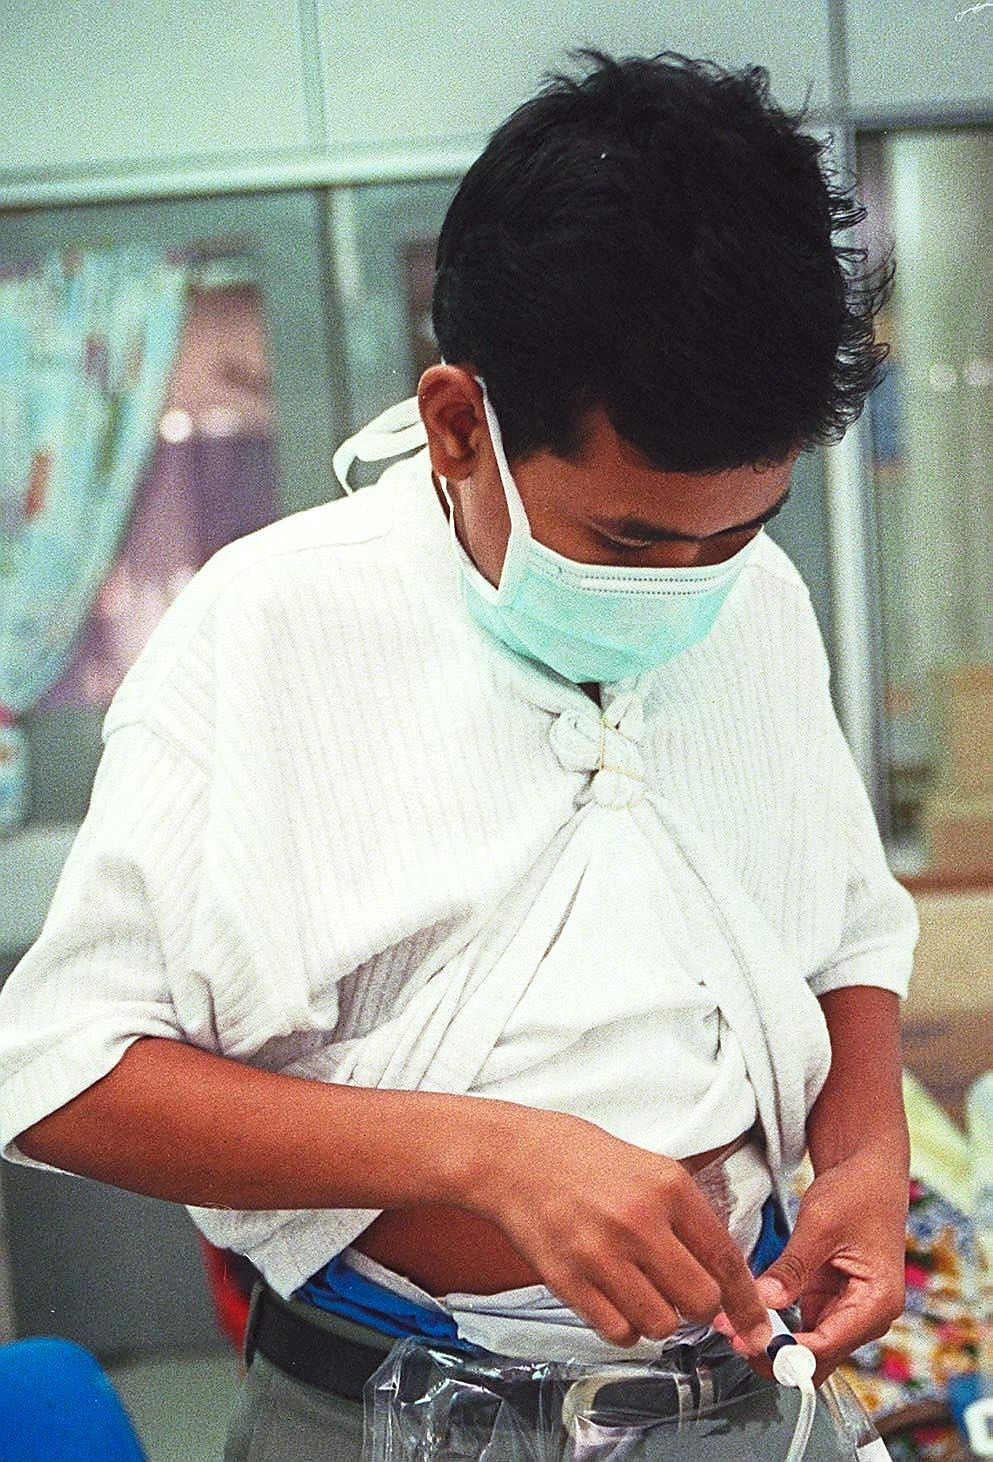 Peritoneal dialysis, as seen in this filepic, allows for more flexibility in terms of time and diet than haemodialysis.